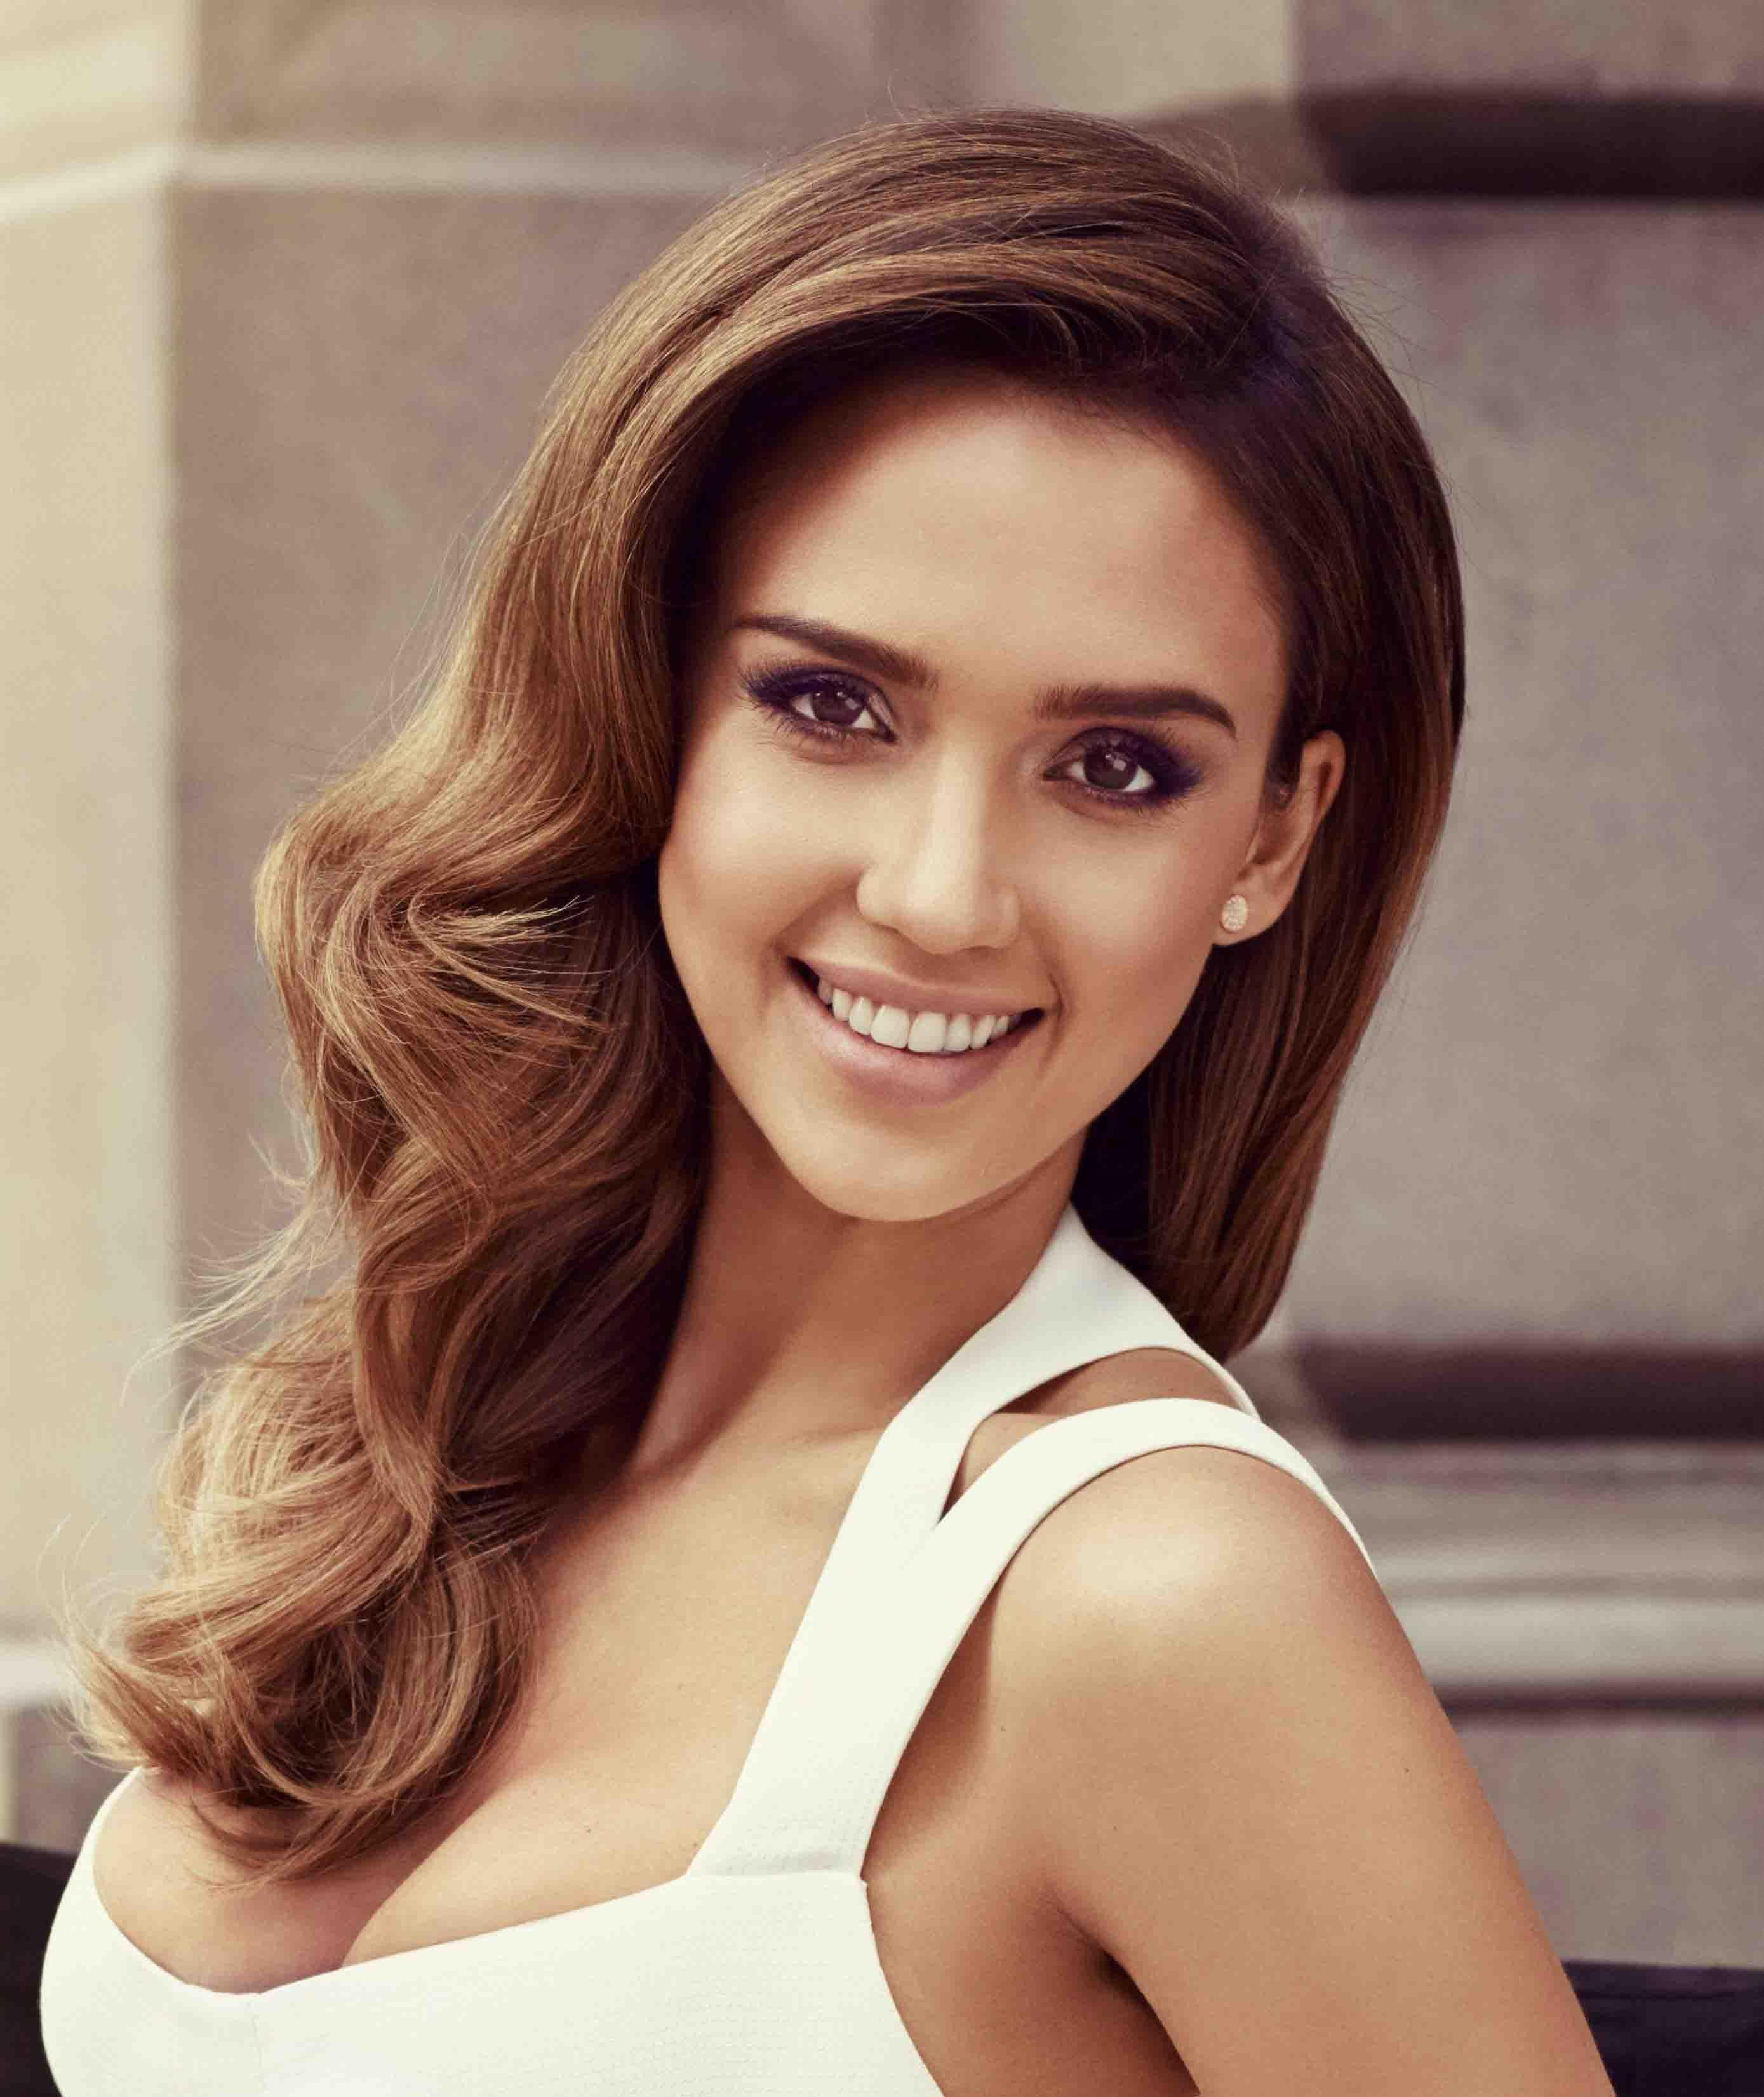 Jessica Alba Wallpapers HD for Android - APK Download